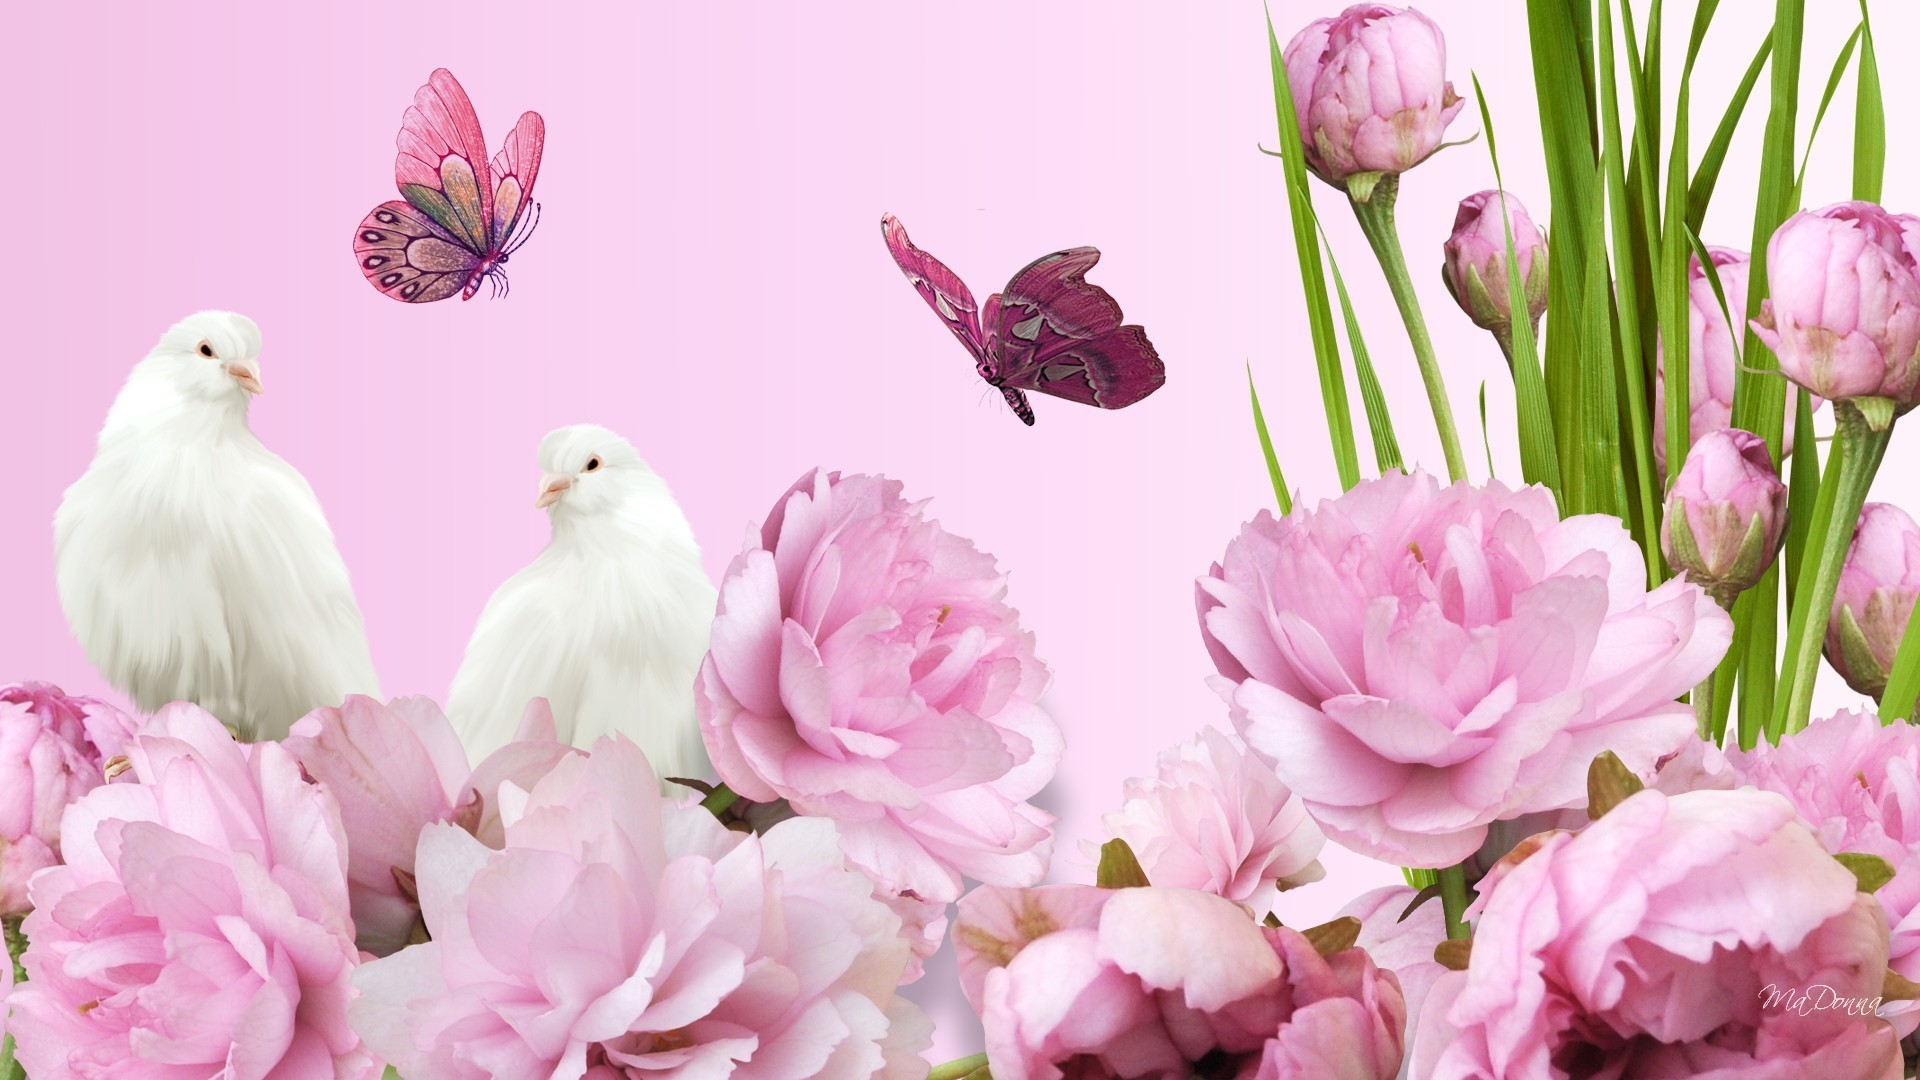 Pink Tag – Peaceful Flowers Doves Bright Spring Peonies Pink Lush Summer  Pigeon Fragrant Graceful Aroma